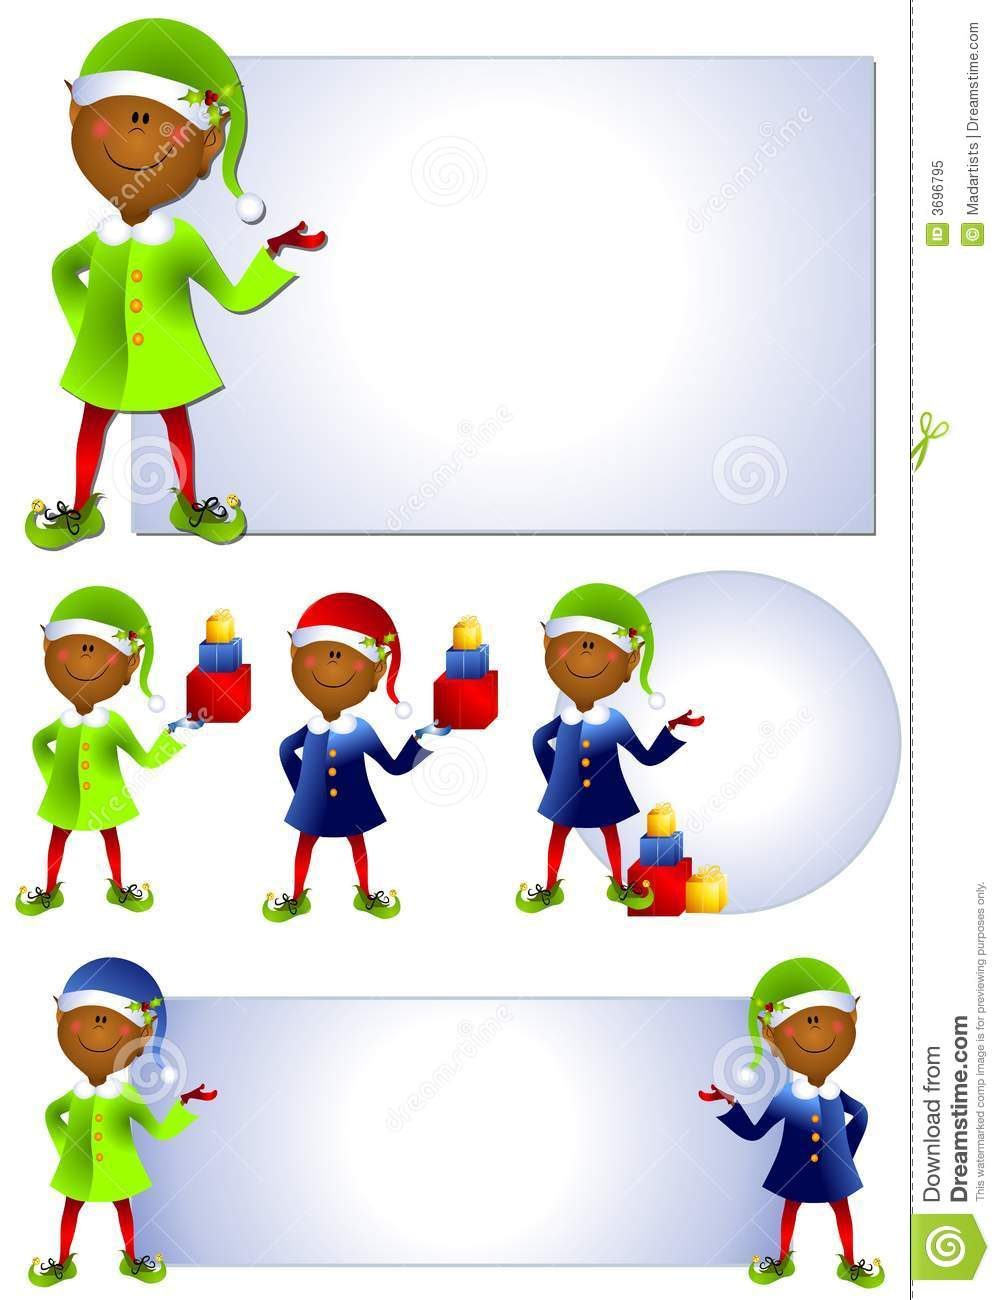 african american santa elf clip art stock illustration rh dreamstime com african american christian clipart images African American Church Clip Art